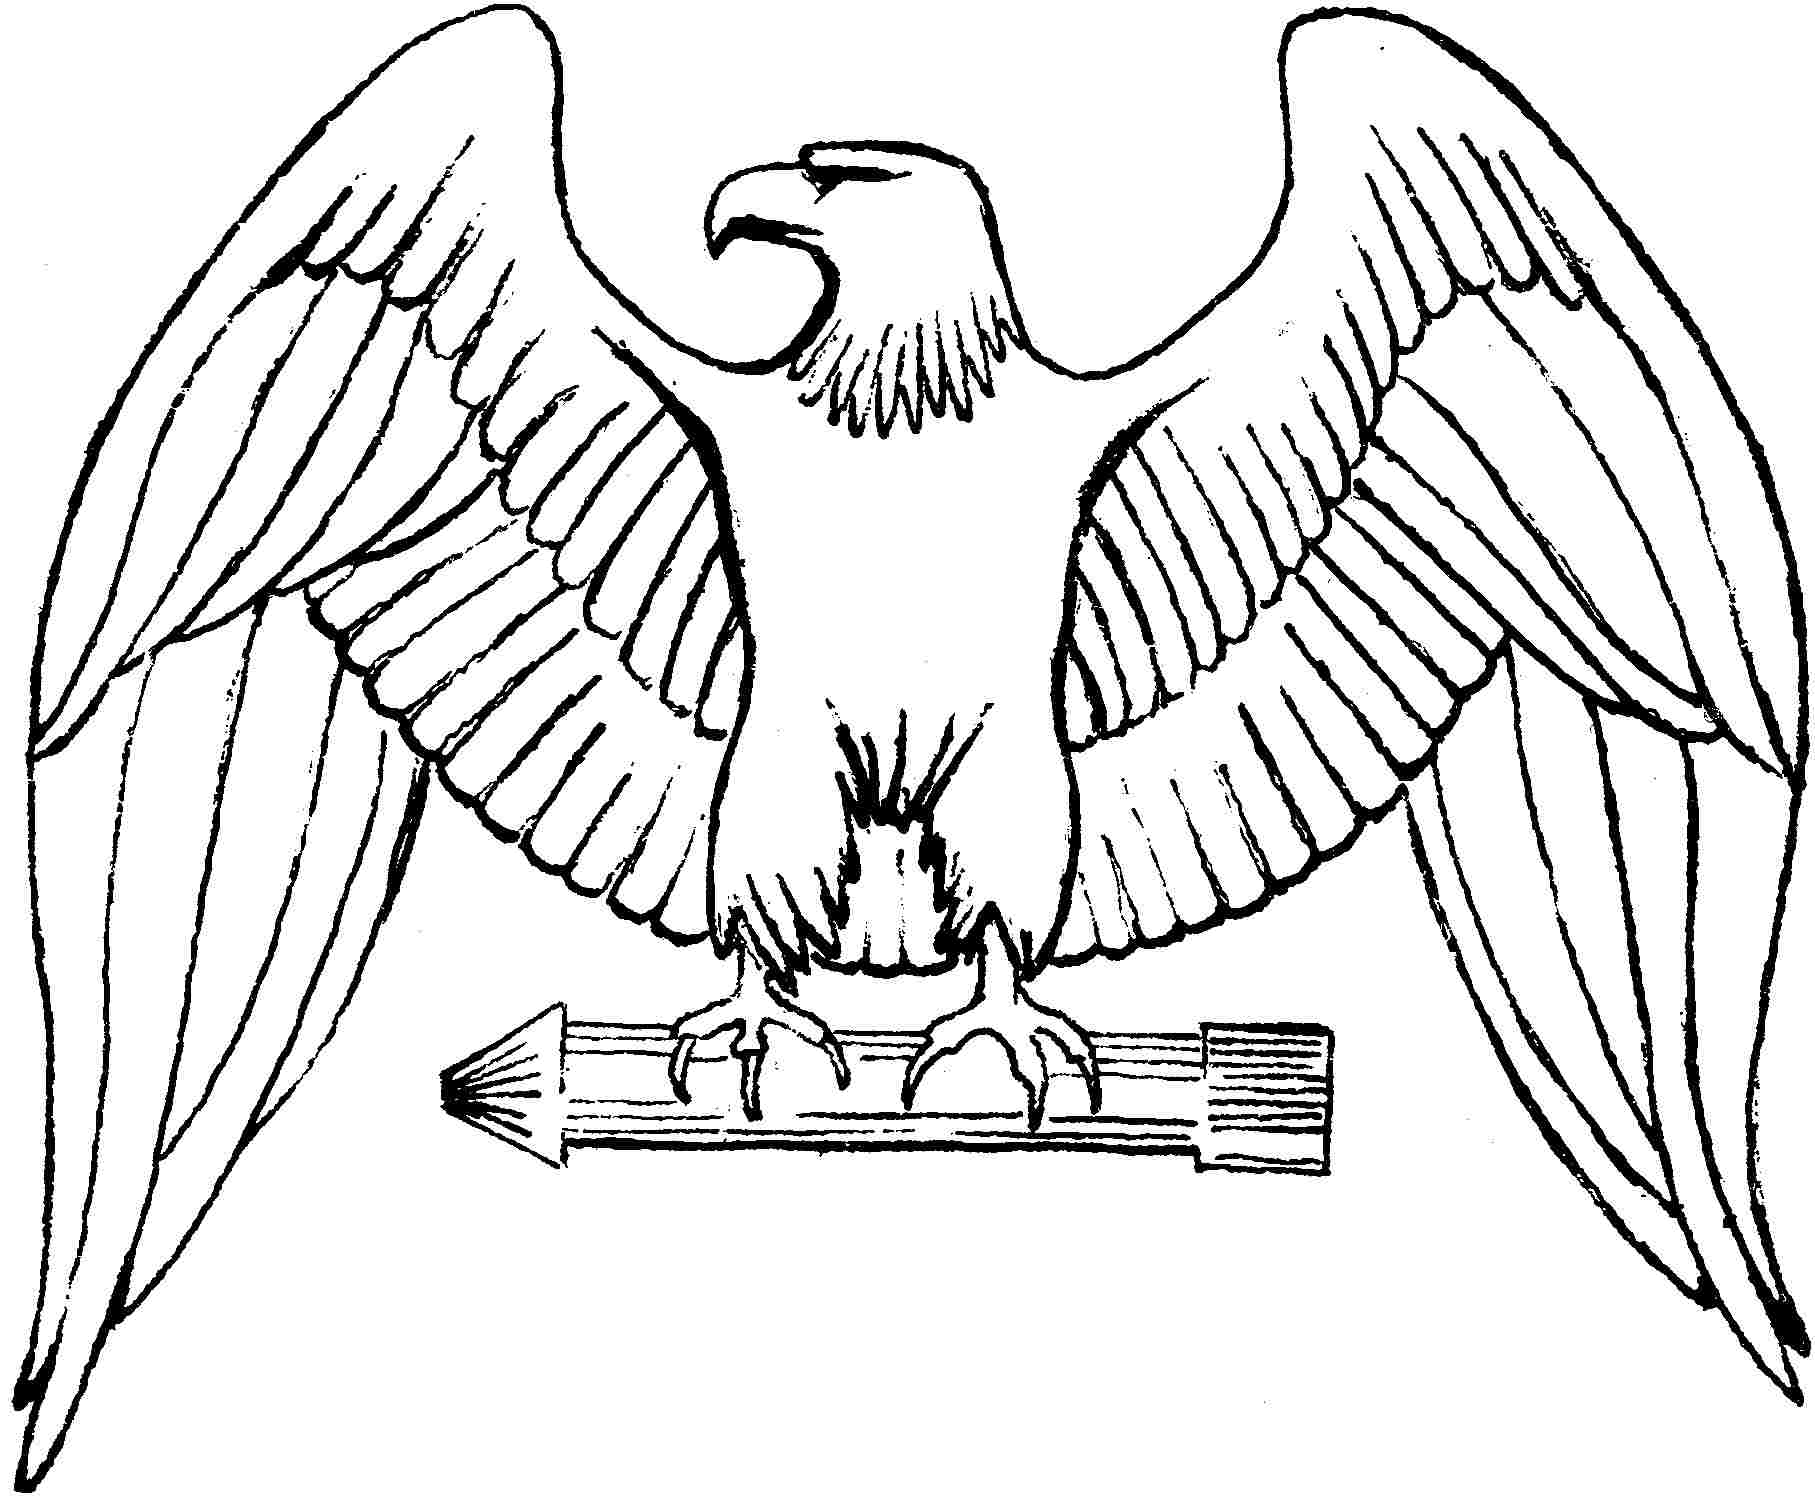 Philadelphia Eagles Helmet Coloring Pages - Atkinson Flowers